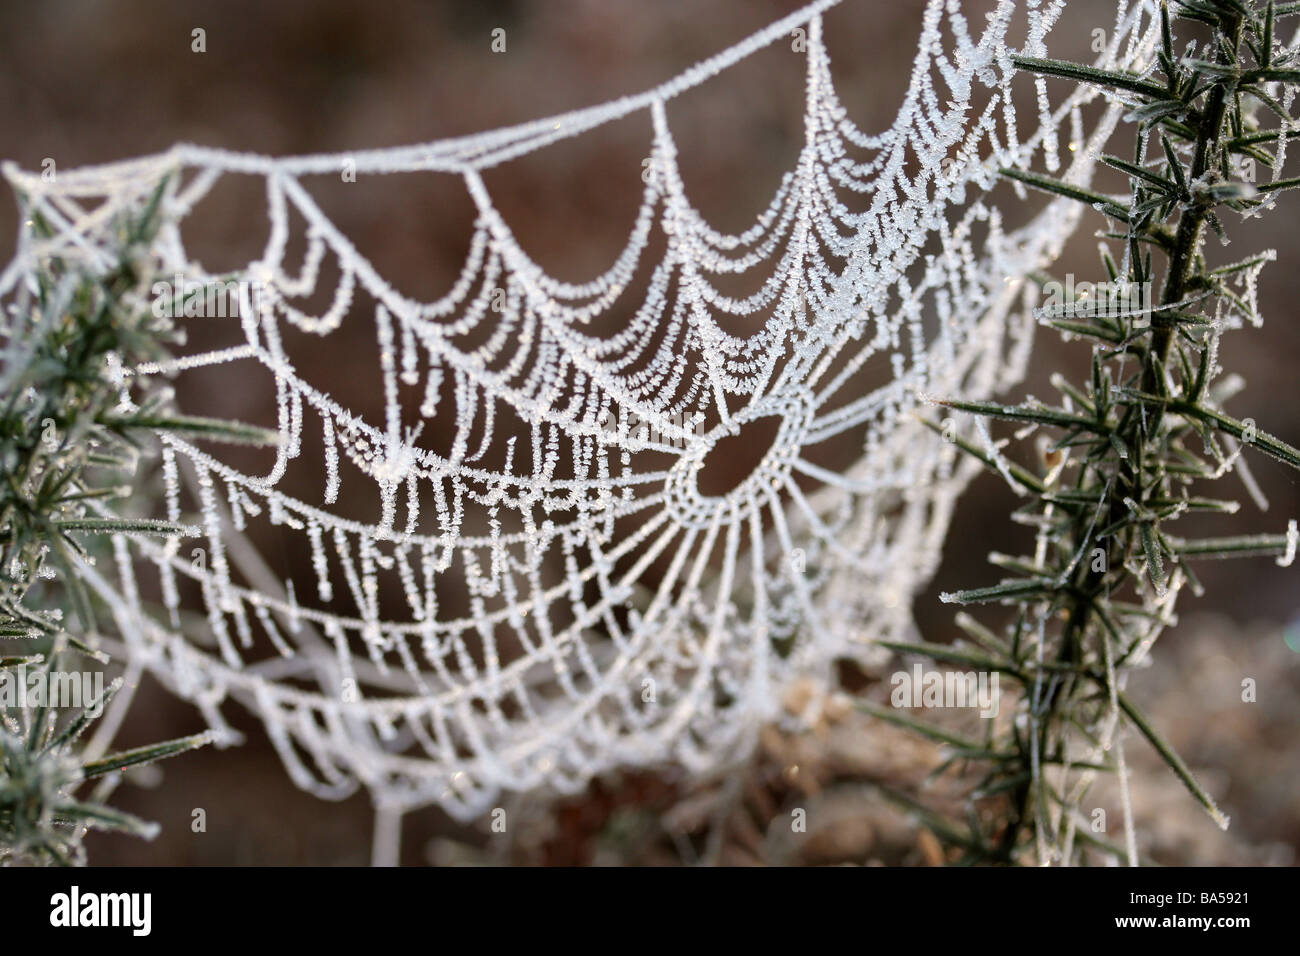 Frosty Spiders Web - Stock Image